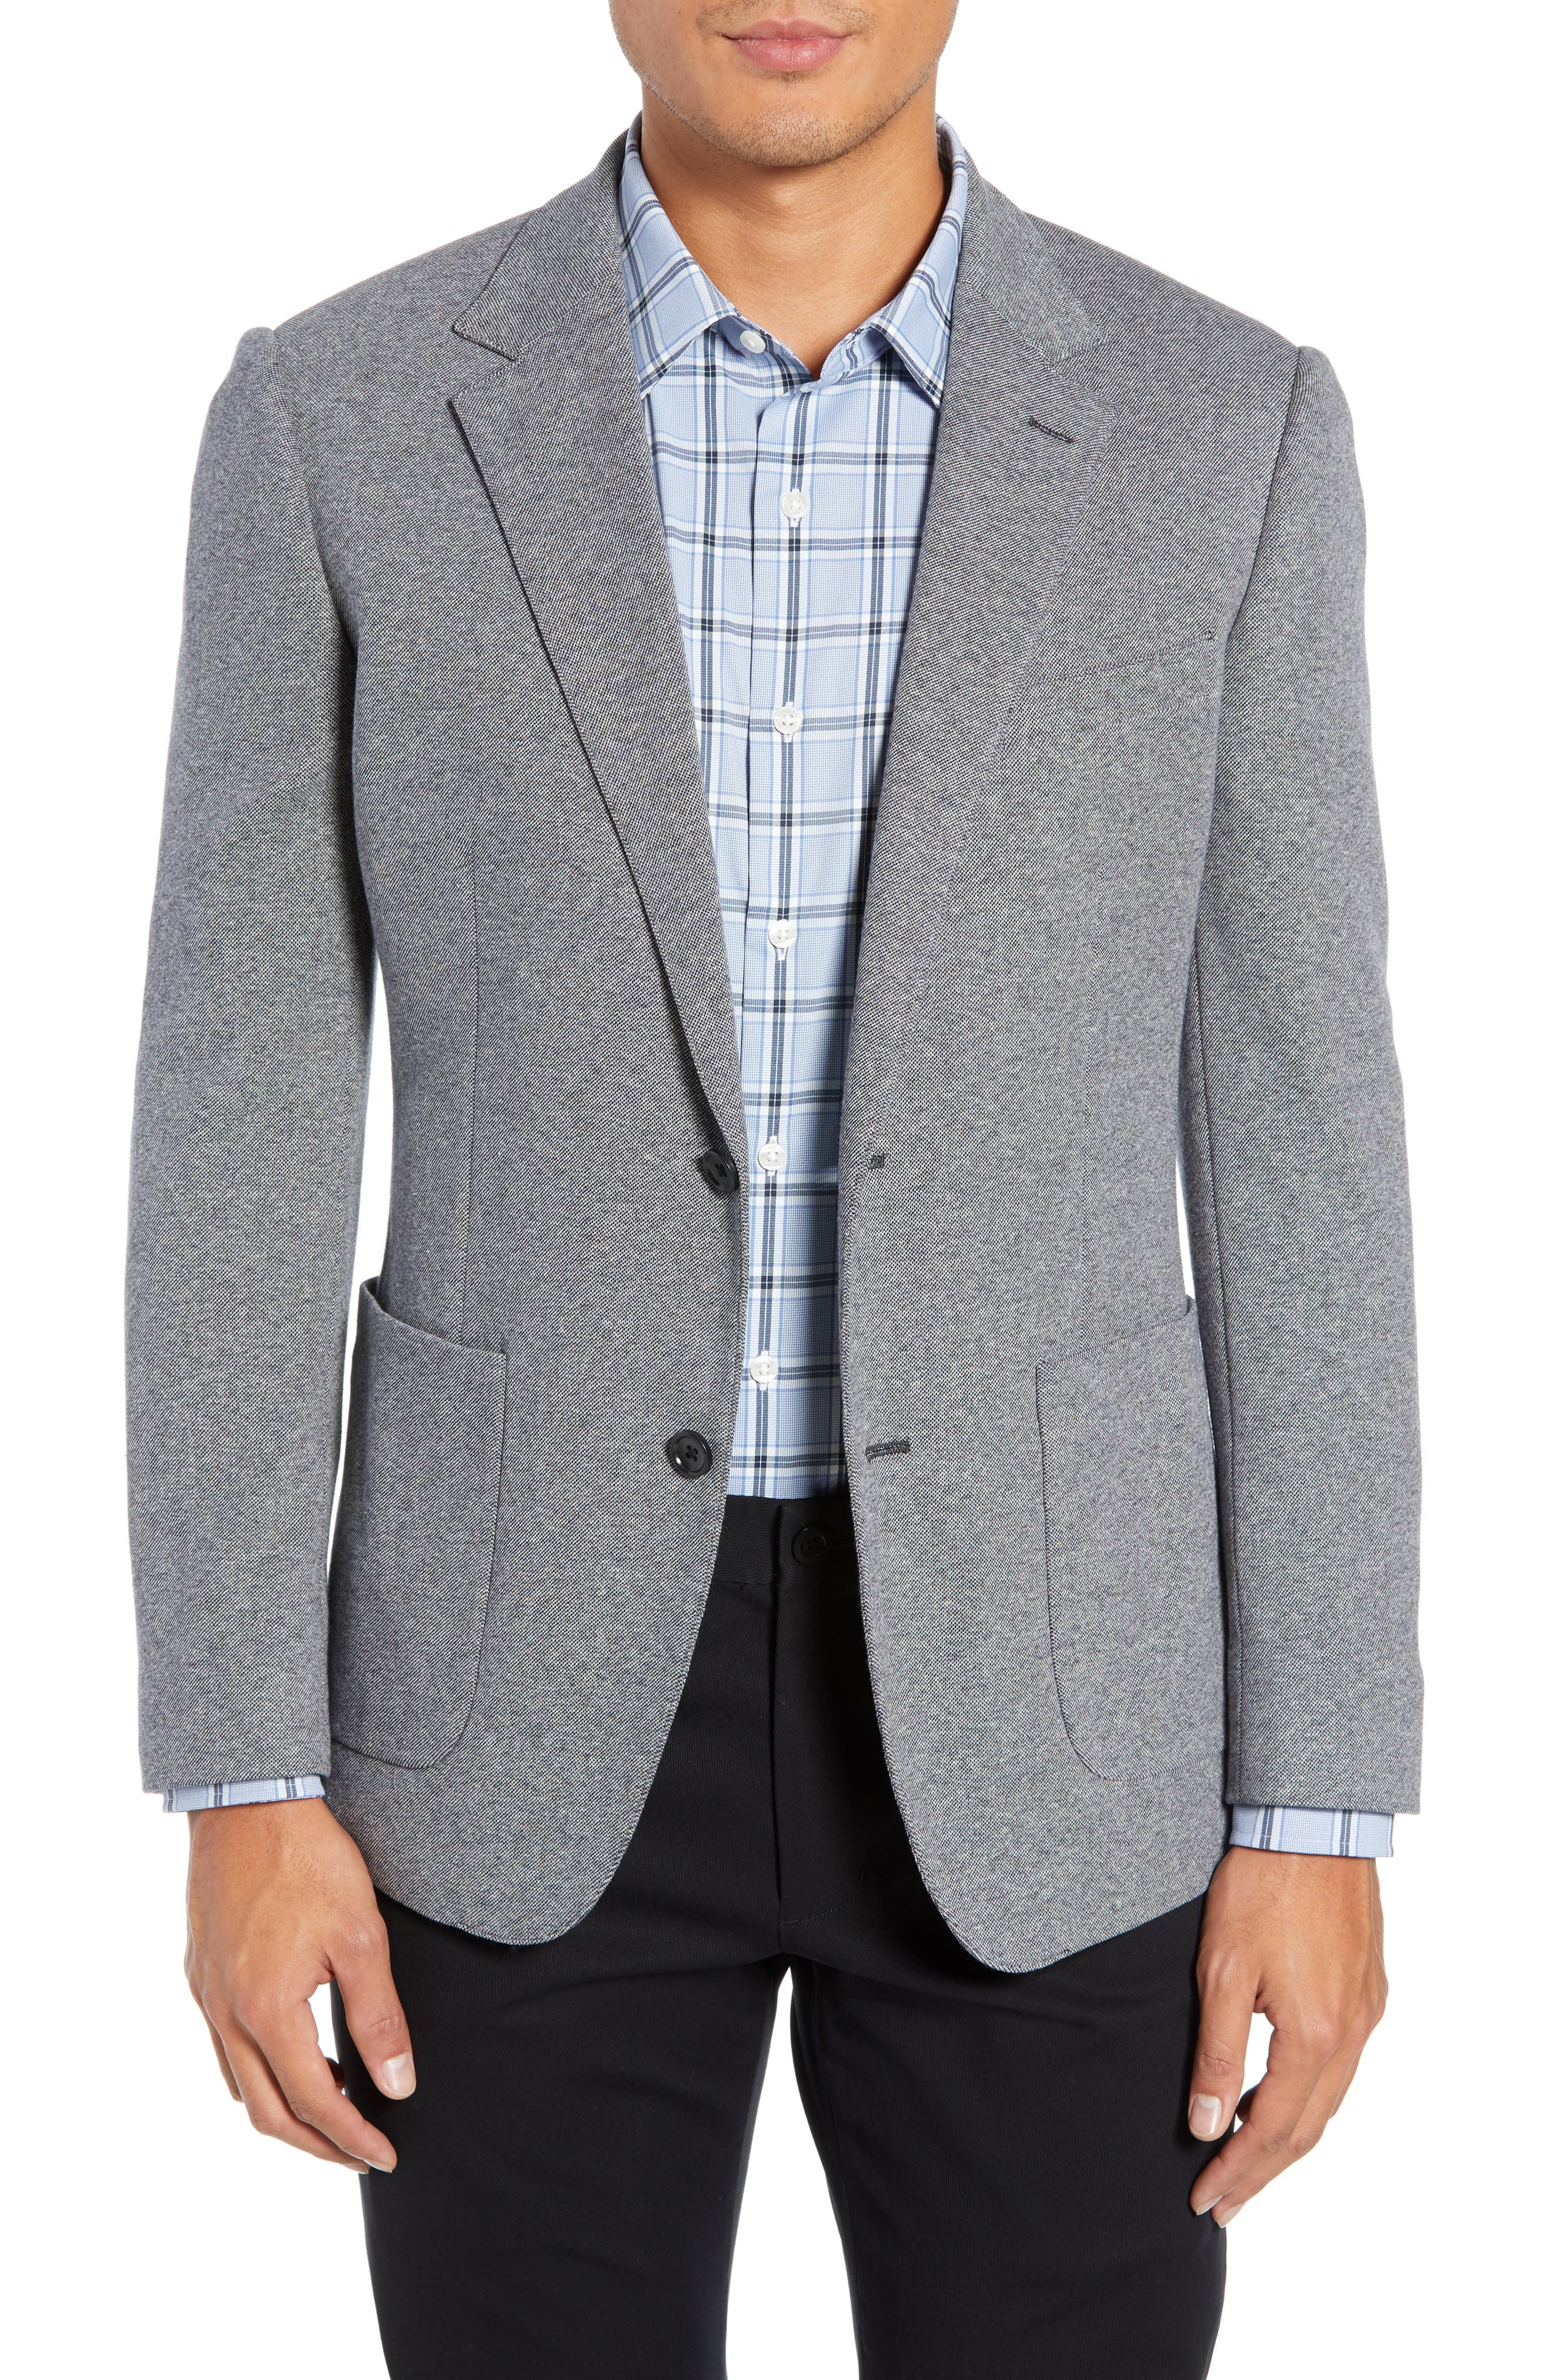 Jetsetter Trim Fit Knit Cotton Sport Coat,                         Main,                         color, LIGHT GREY